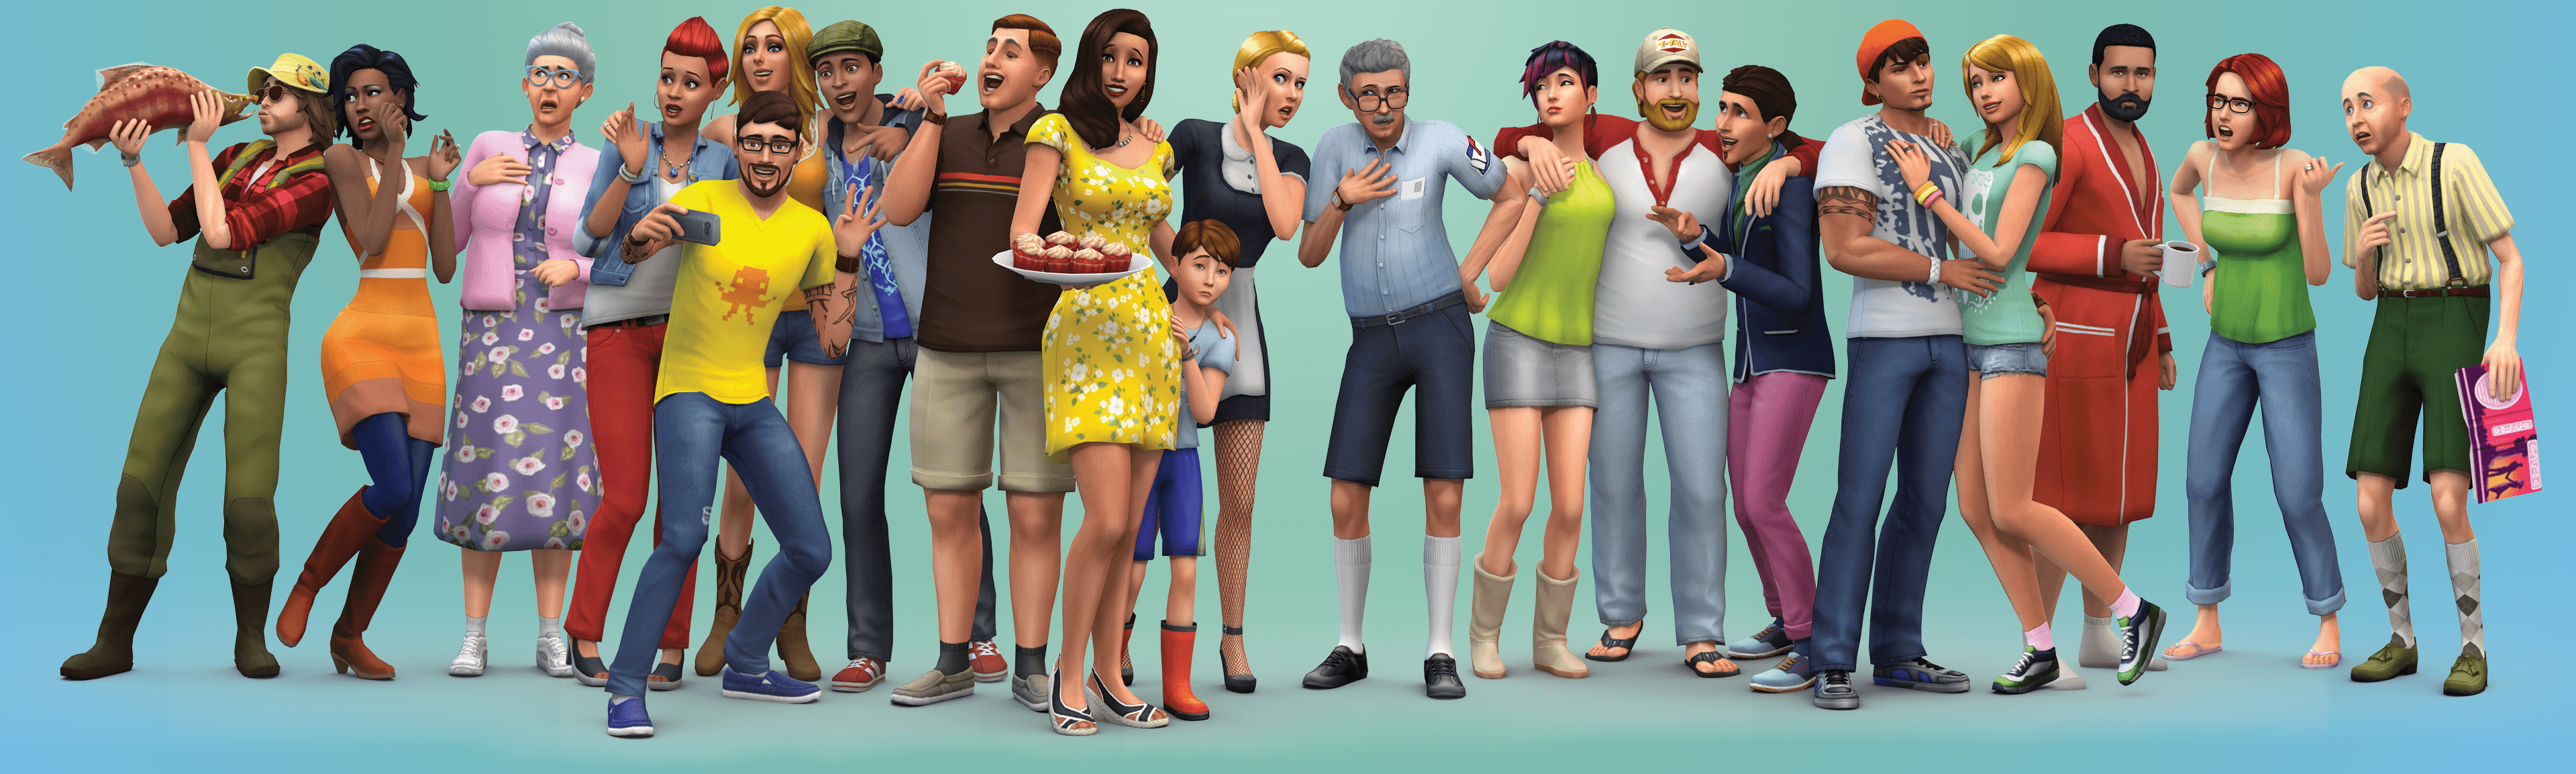 SimFans: New Sims 4 Render + Downloadable Wallpapers!